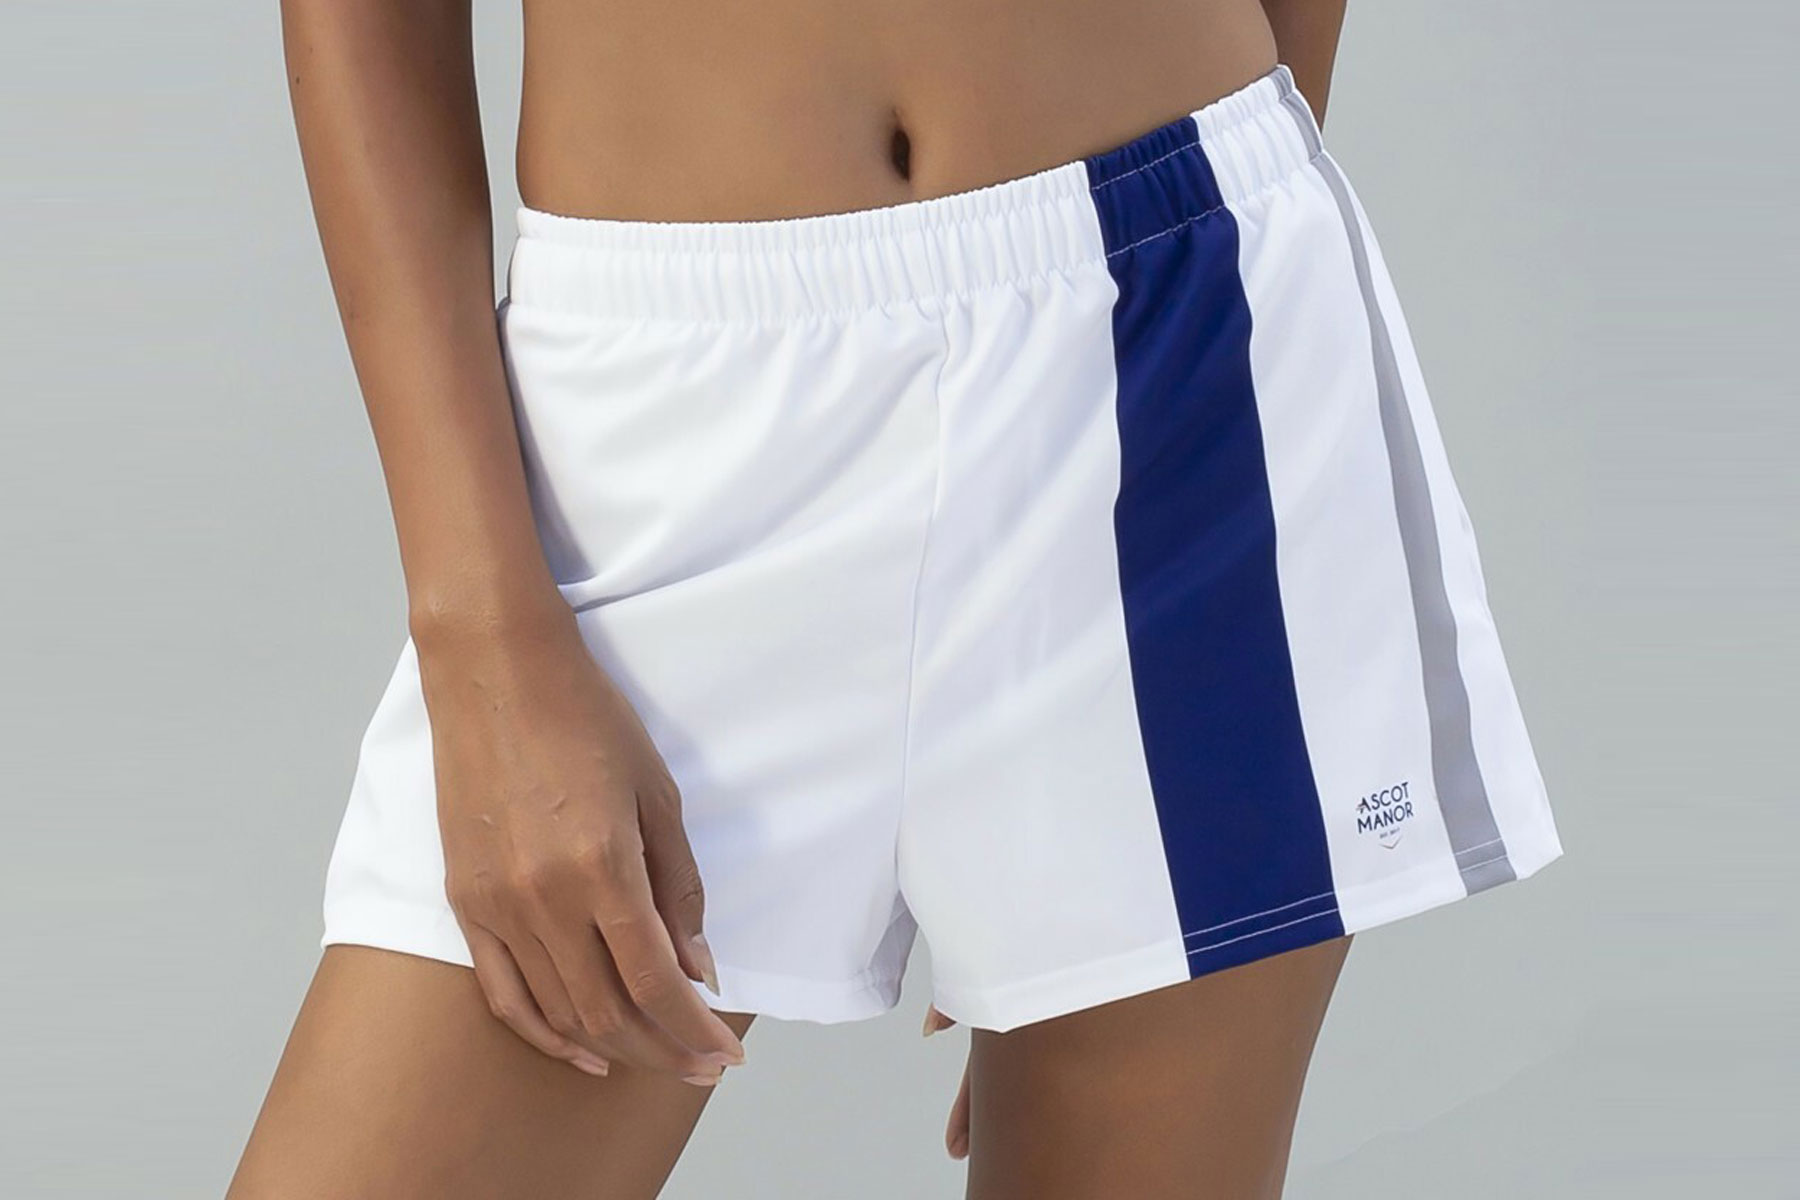 Women's white and blue athletic shorts